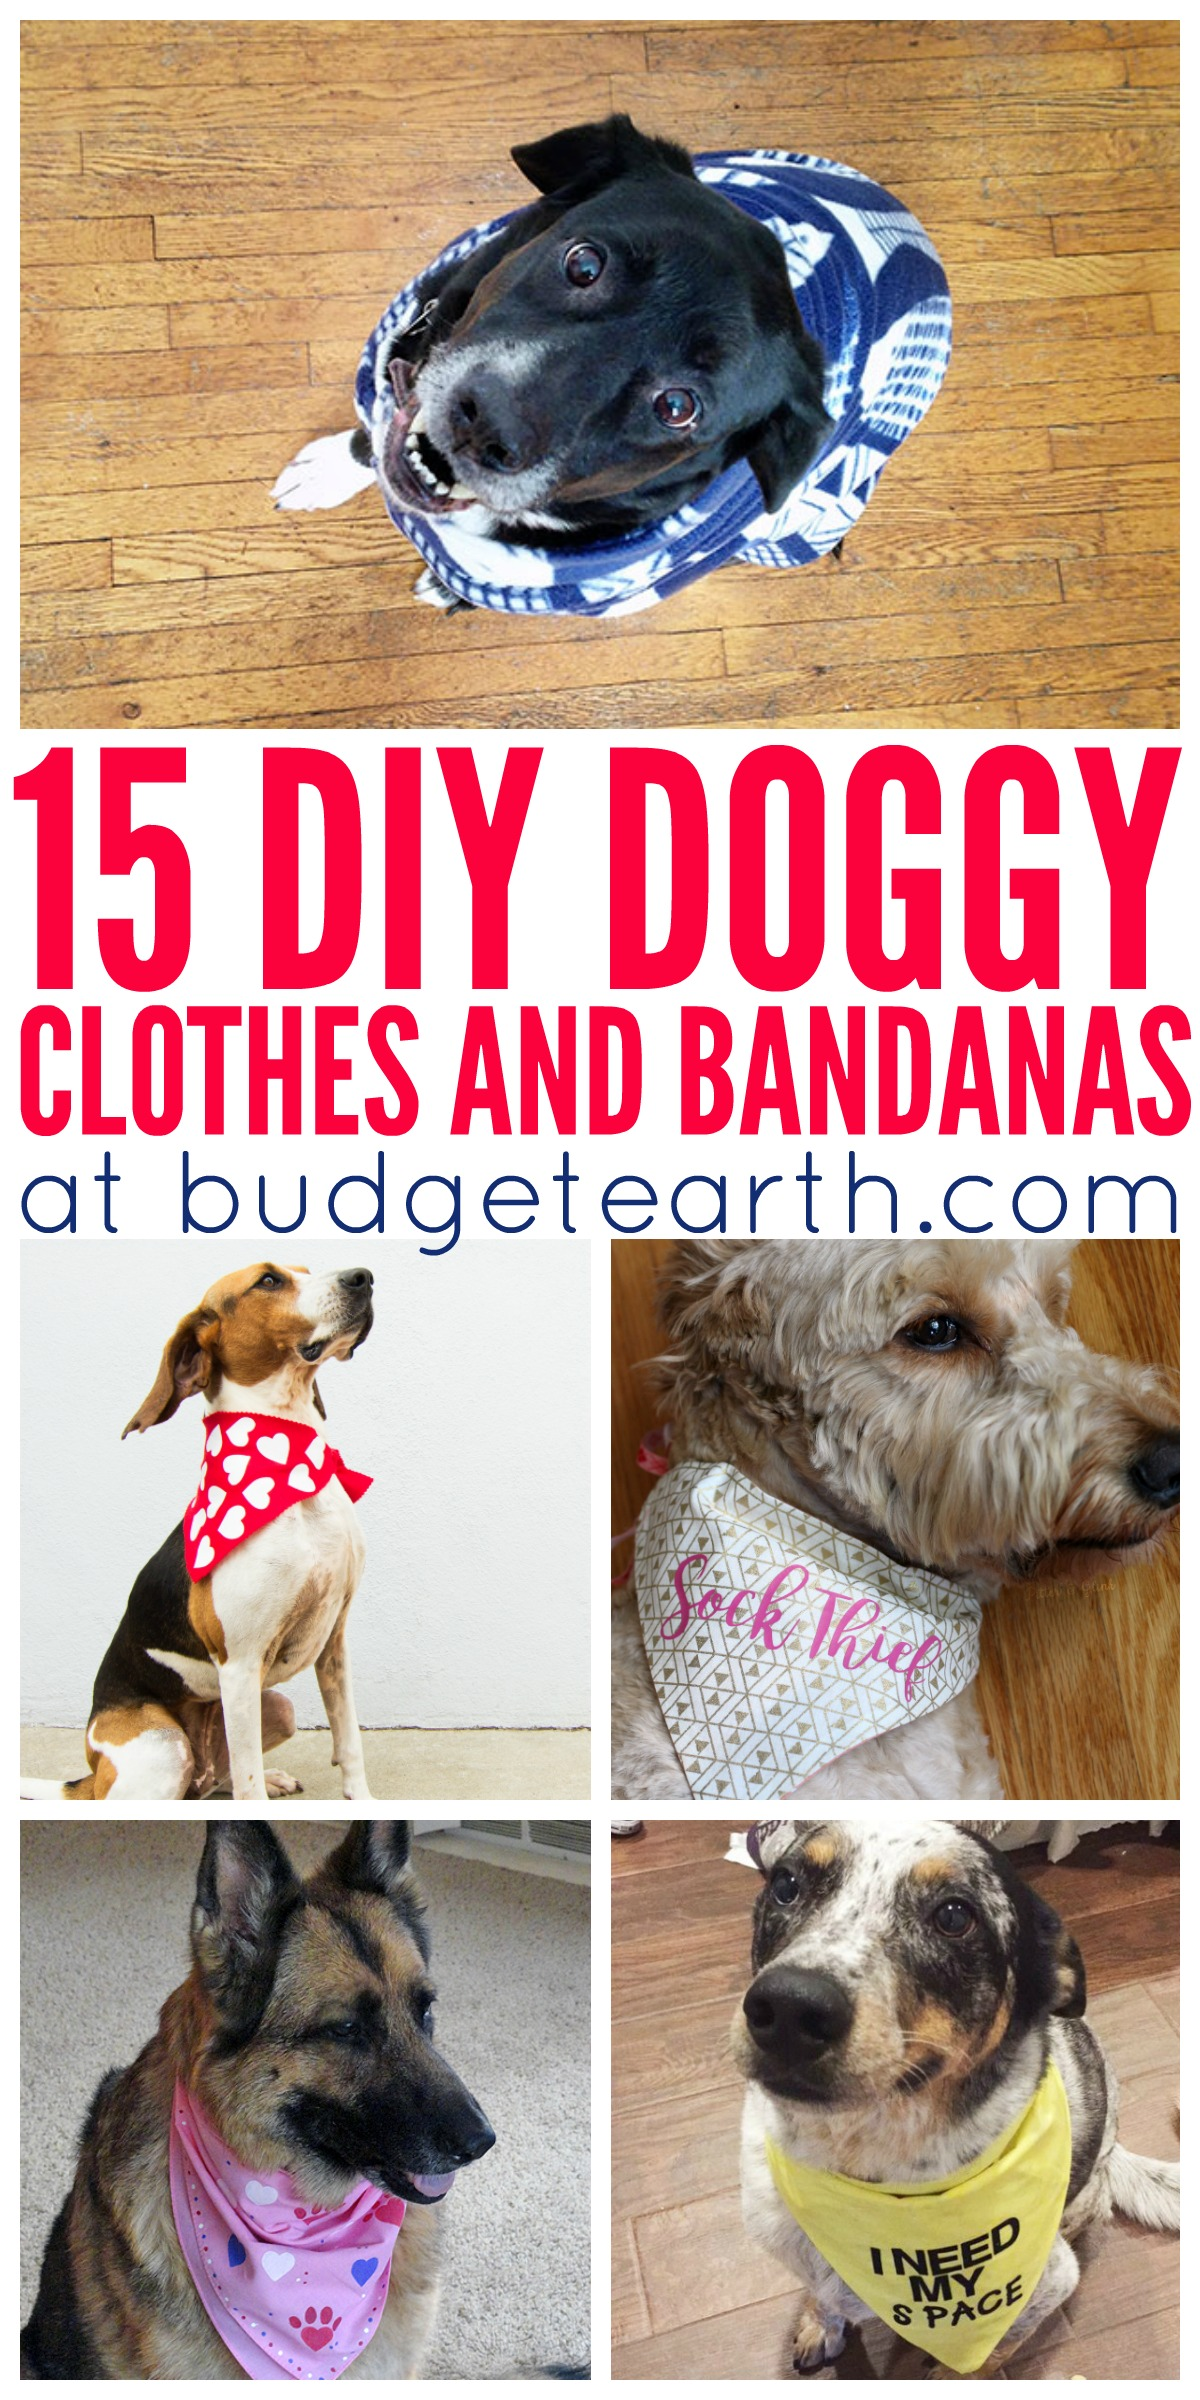 15 DIY Doggy Clothes & Bandanas